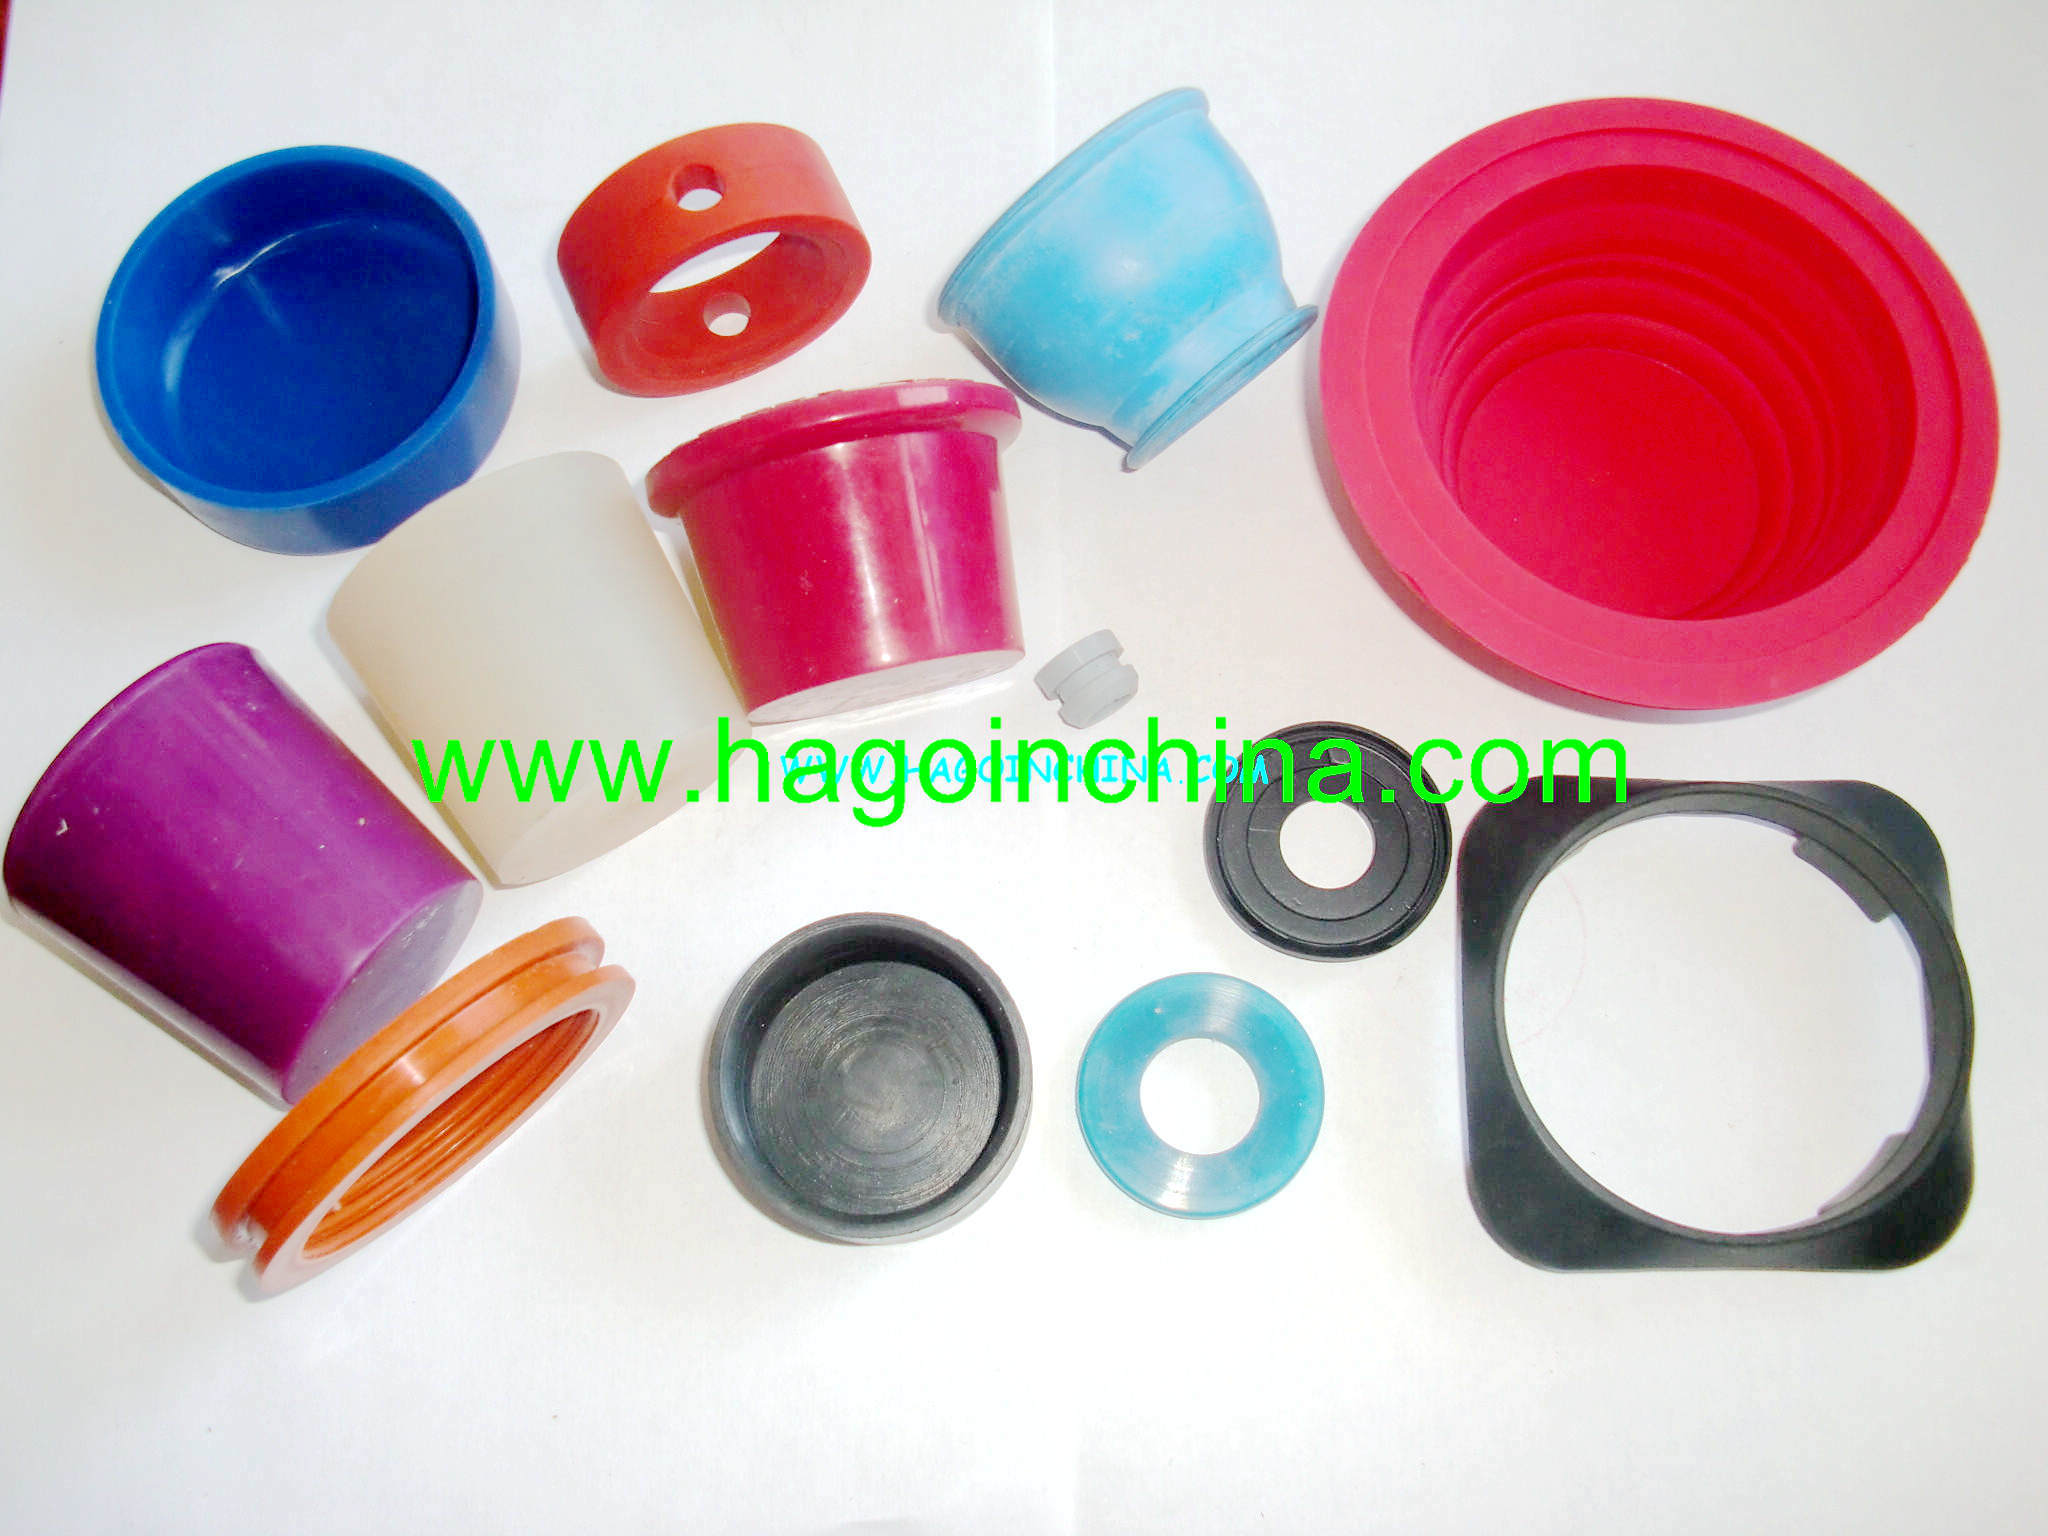 Medical Grade Silicone Rubber Products